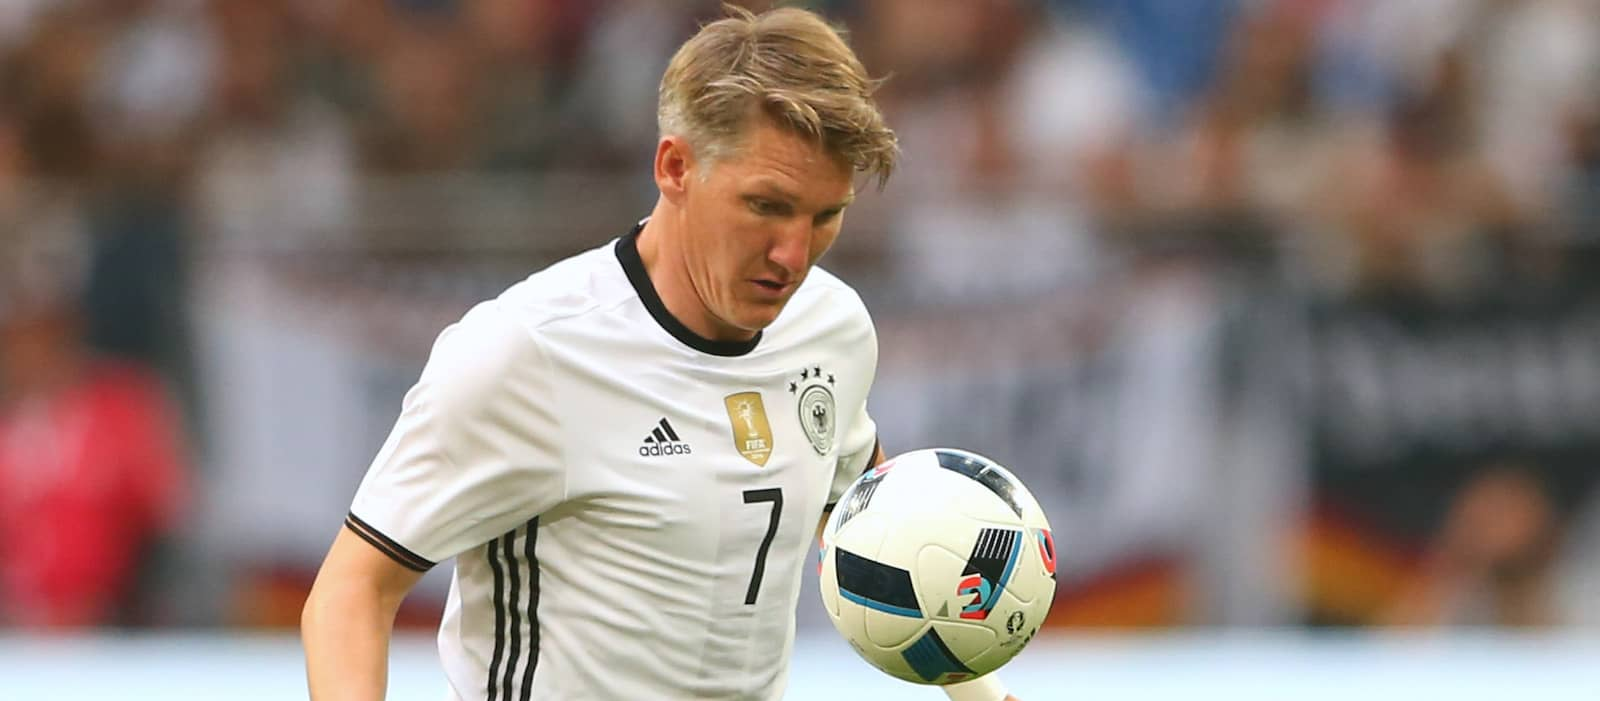 Schweinsteiger urges Jose Mourinho to give him a chance at Man United